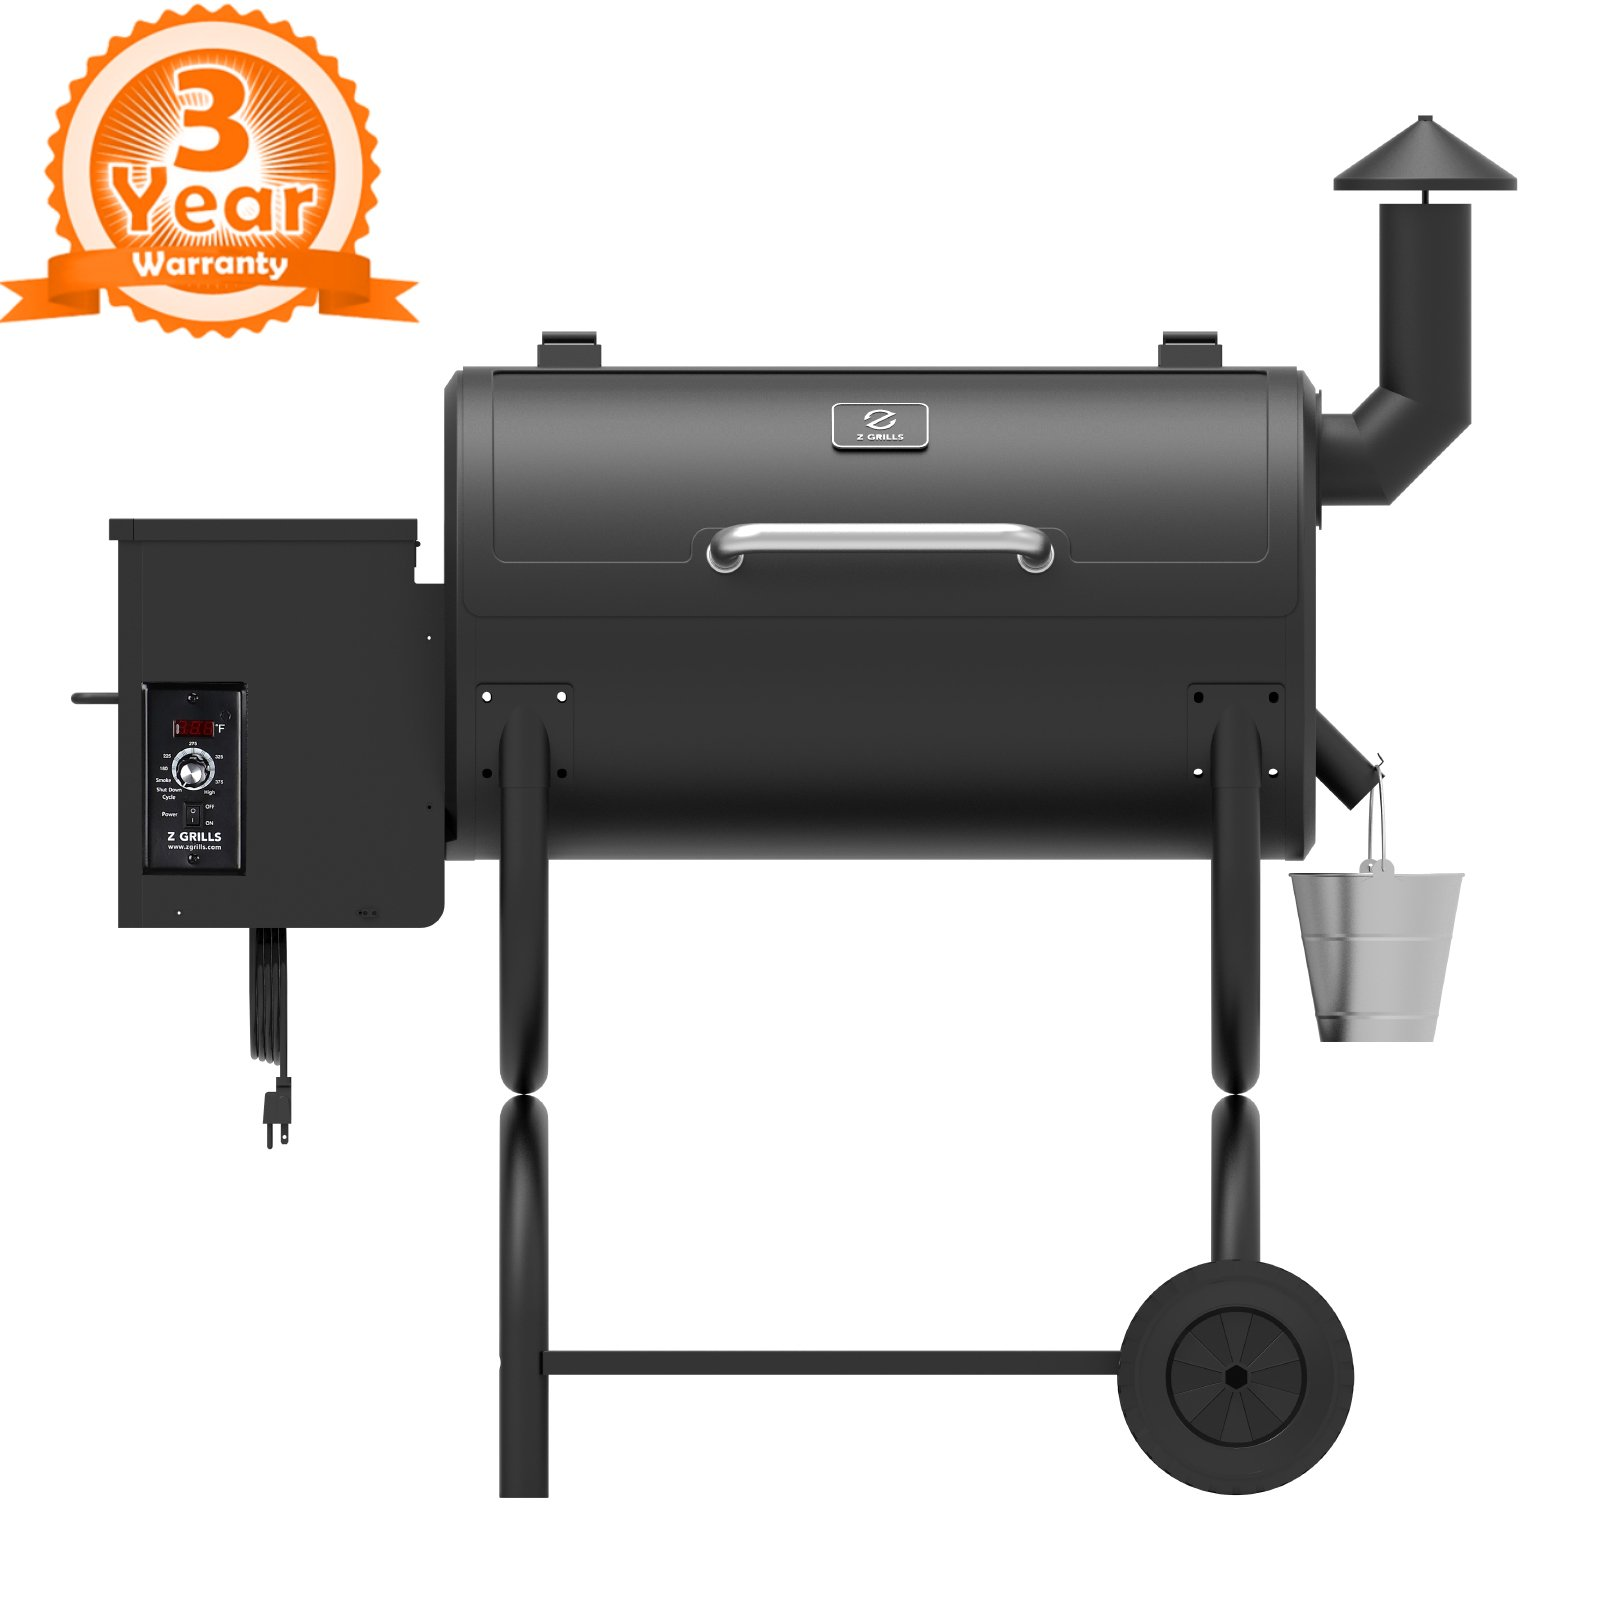 Z GRILLS ZPG-550B 2019 Upgrade Model Wood Pellet Grill & Smoker 6 in 1 BBQ Grill Auto Temperature Control, 550 sq Inch Deal, Black by Z GRILLS (Image #1)